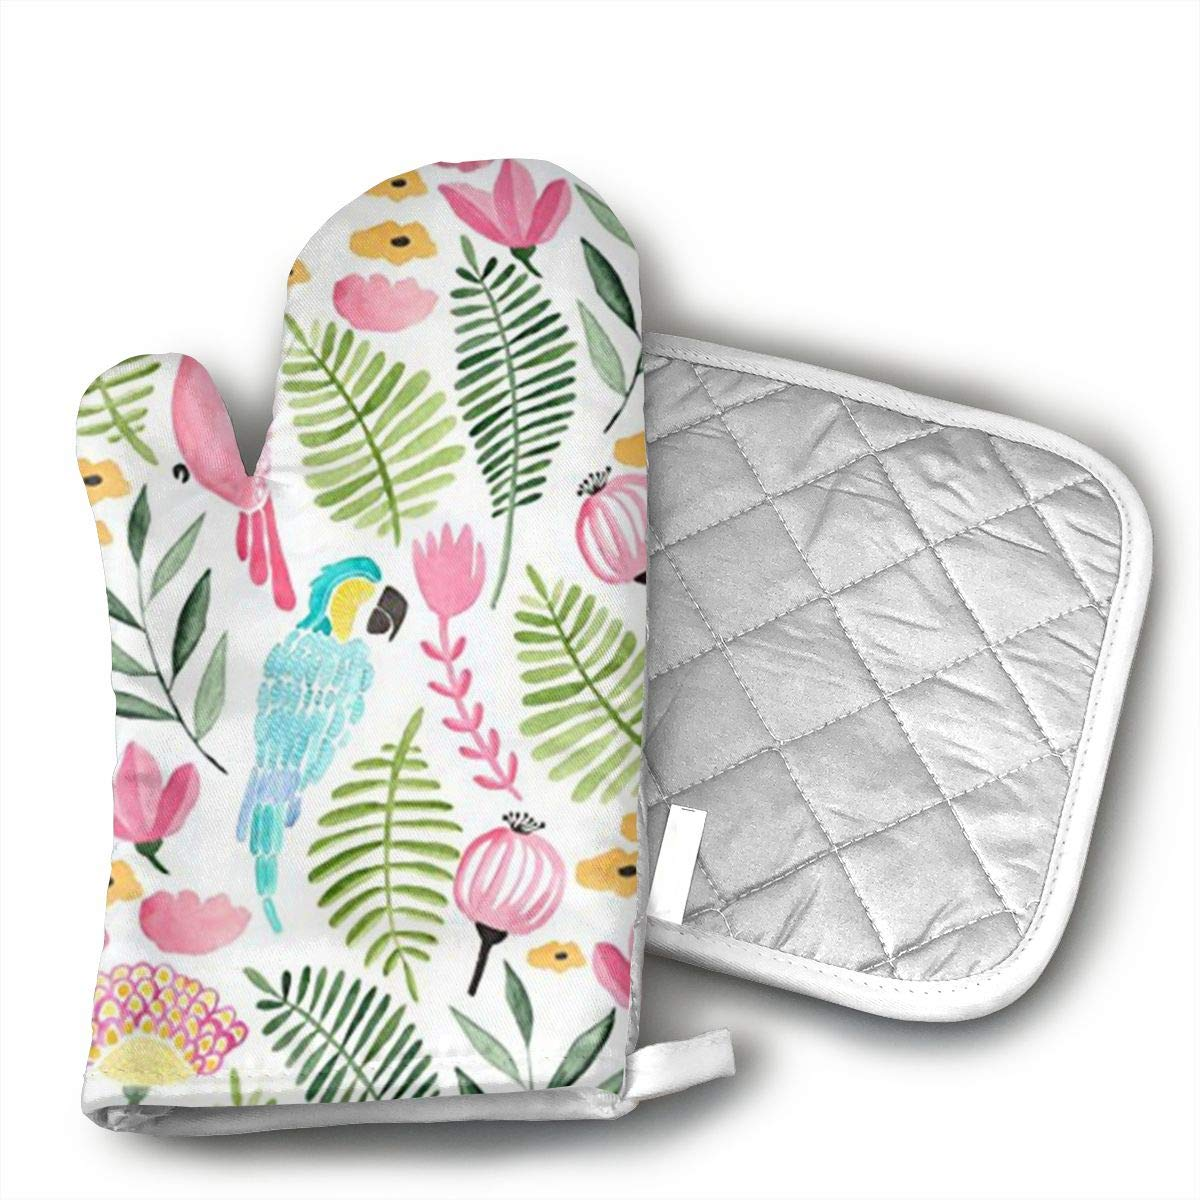 Wiqo9 Summer Tropical Parrots Oven Mitts and Pot Holders Kitchen Mitten Cooking Gloves,Cooking, Baking, BBQ.